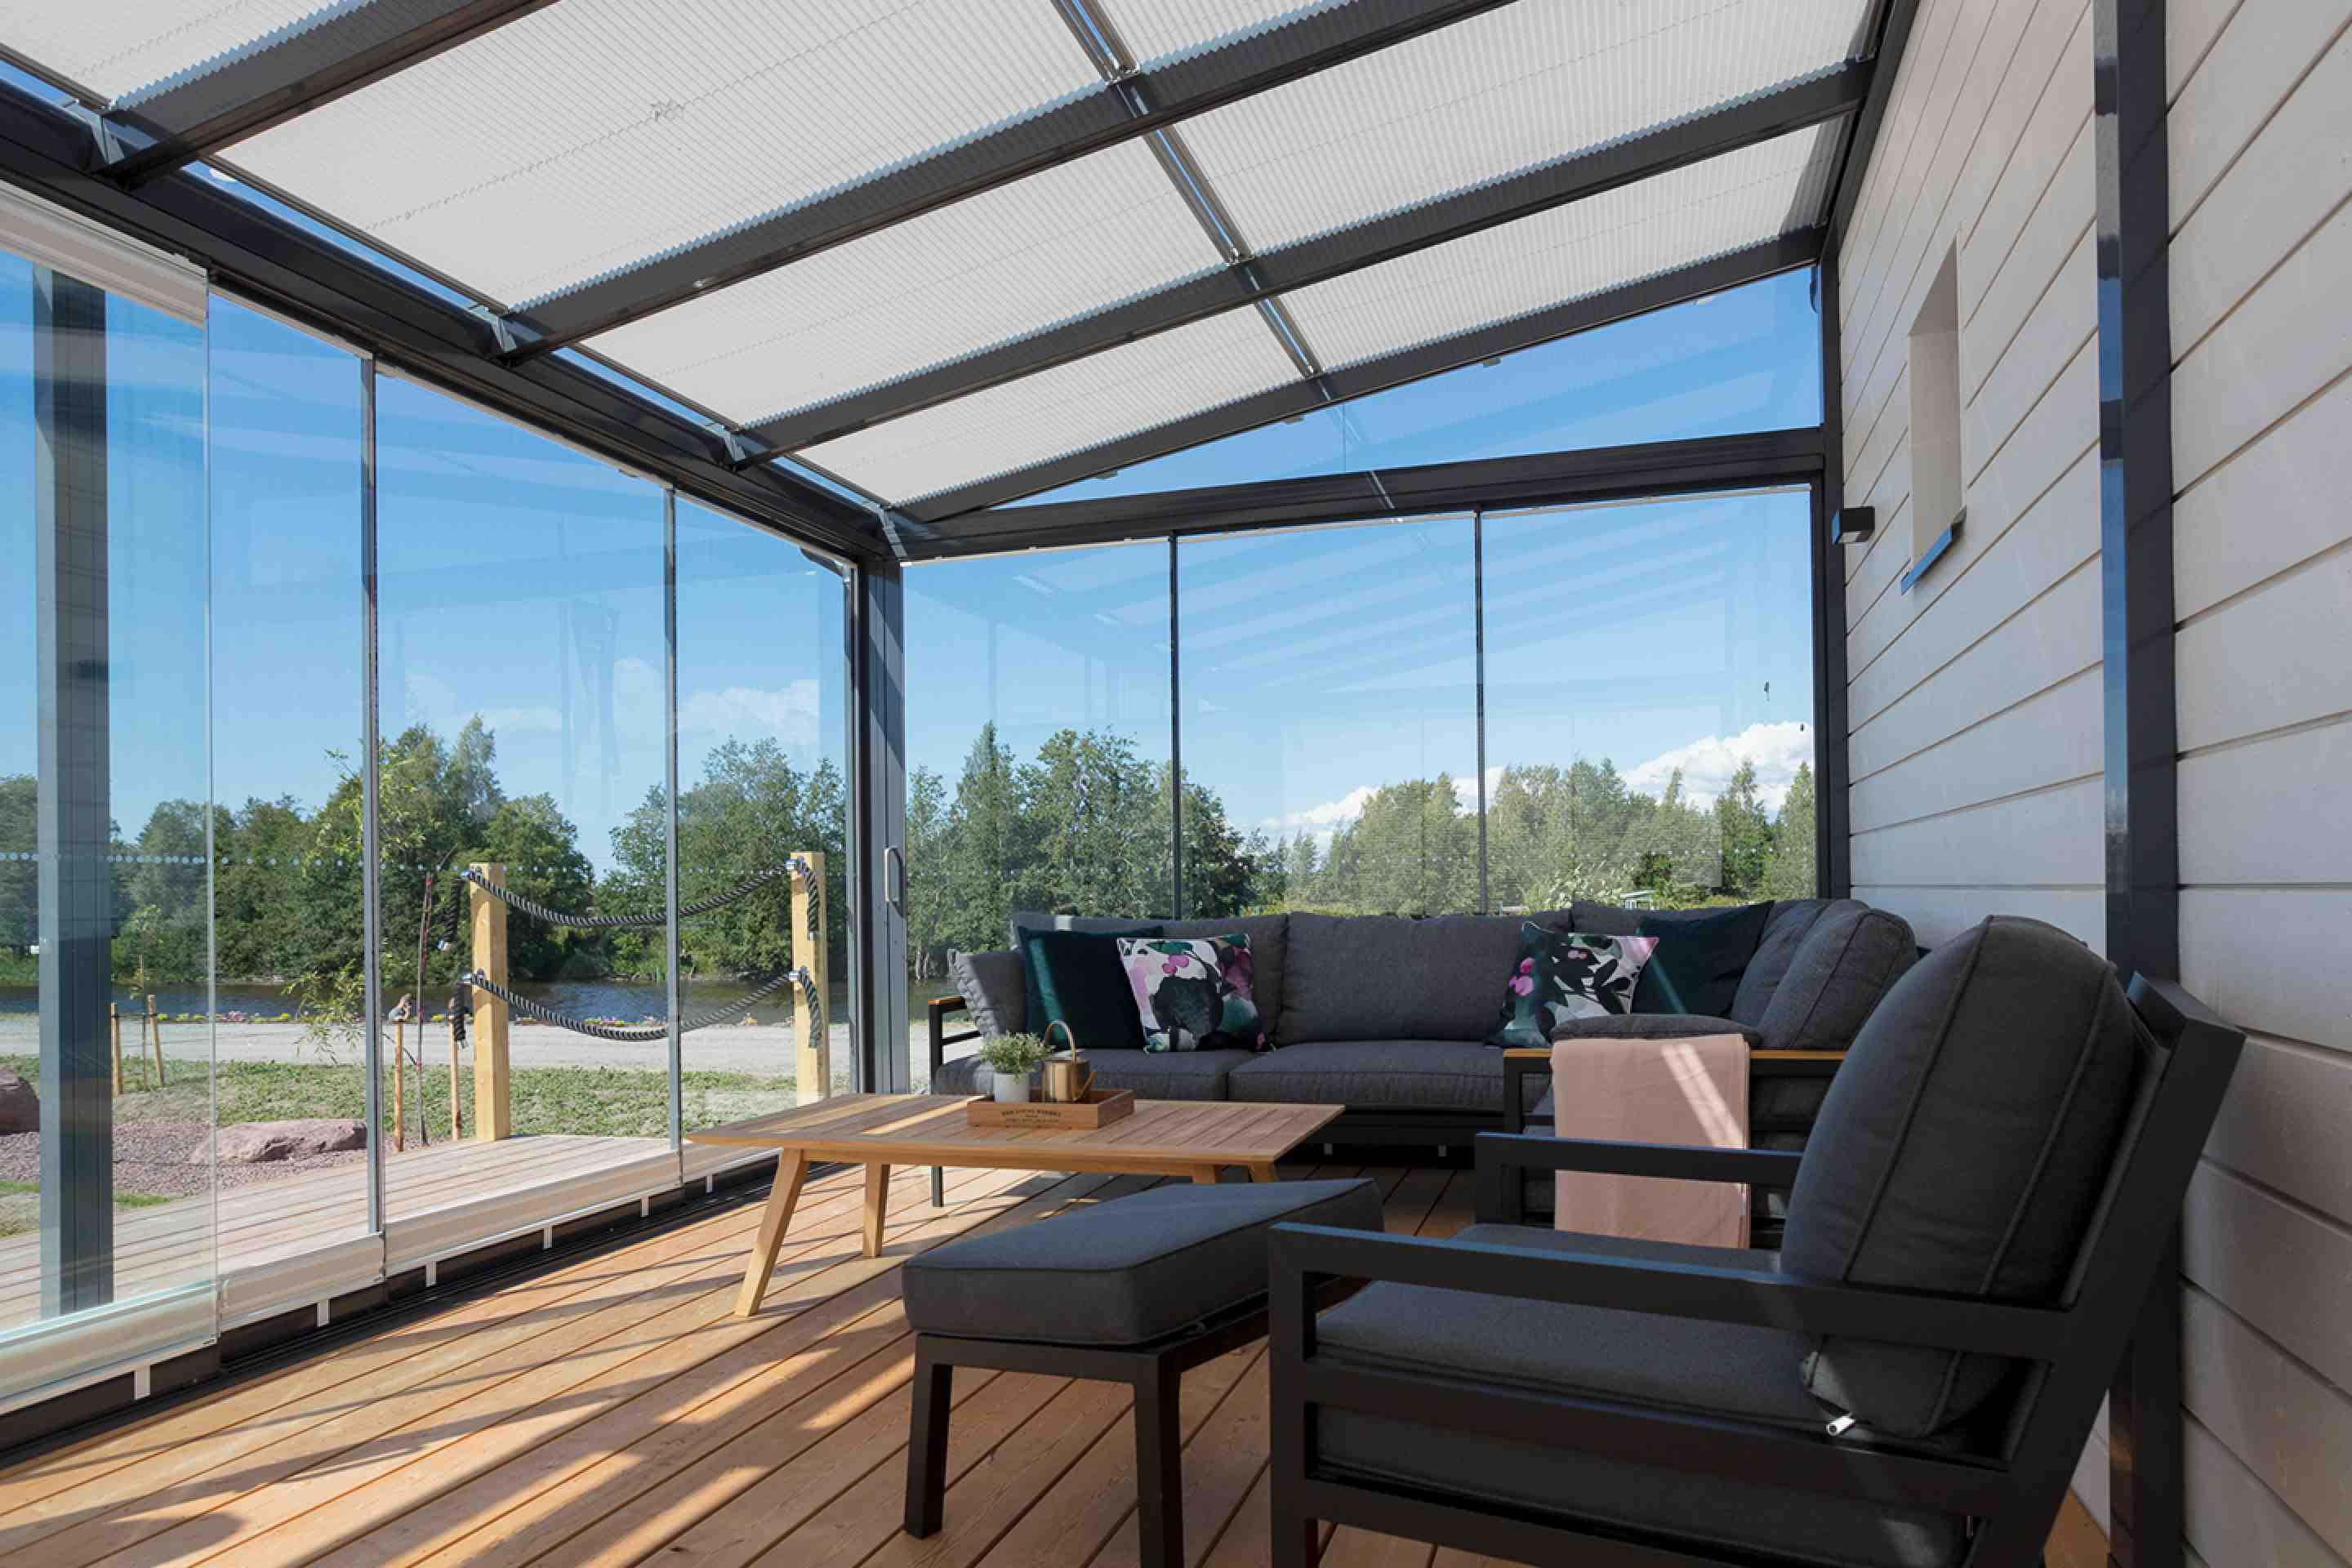 patio covers, deck covers, deck coverings, backyard covered patio, best patio covers, patio cover toronto, patio cover vaughan, patio cover mississauga, patio cover hamilton, patio cover vancouver, patio cover surrey, patio cover canada, lumon canada,